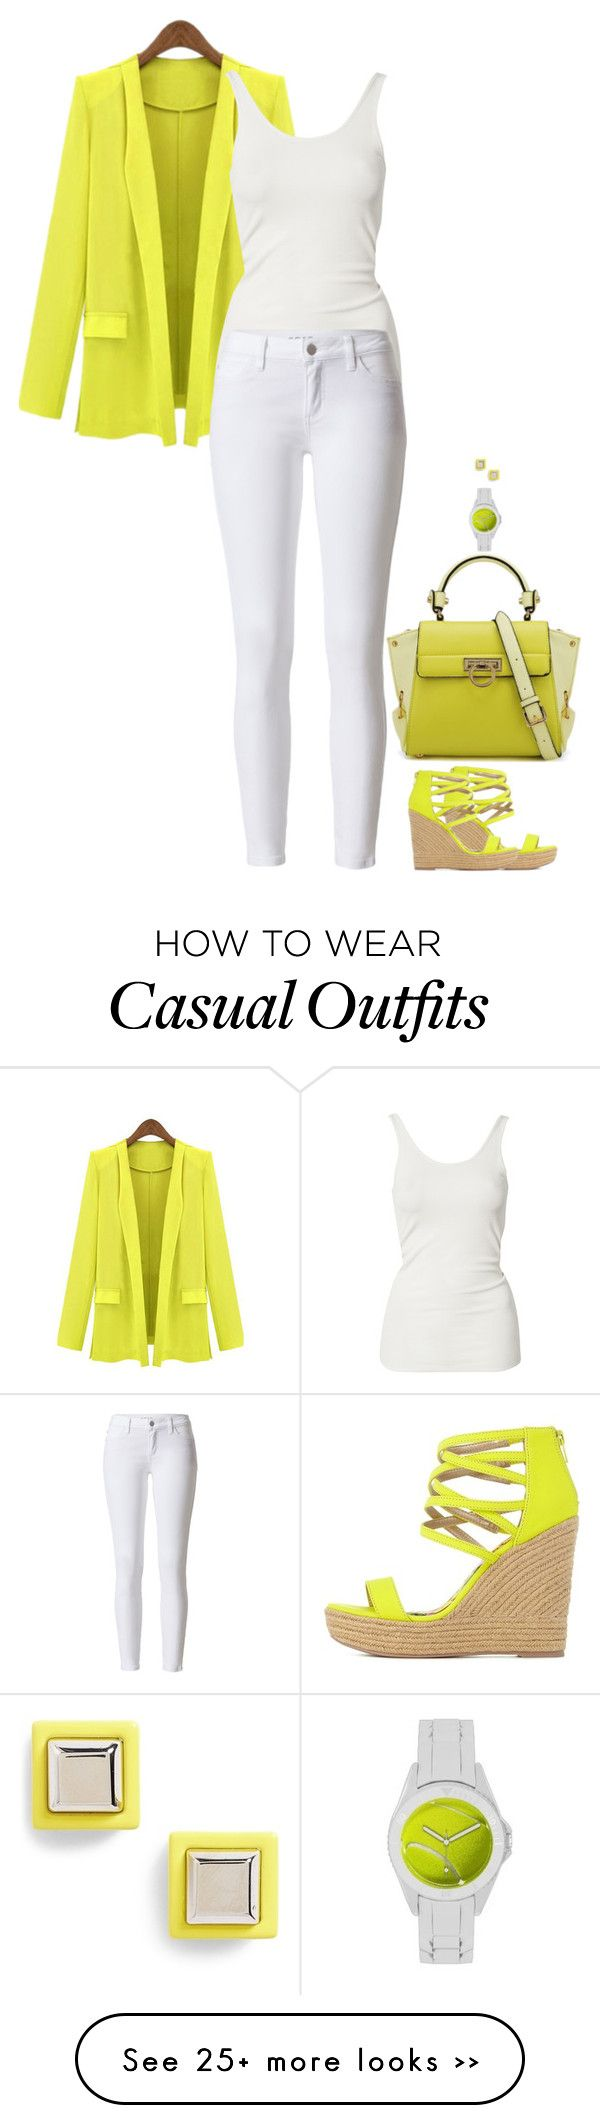 """Casual Chic"" by miki006 on Polyvore"